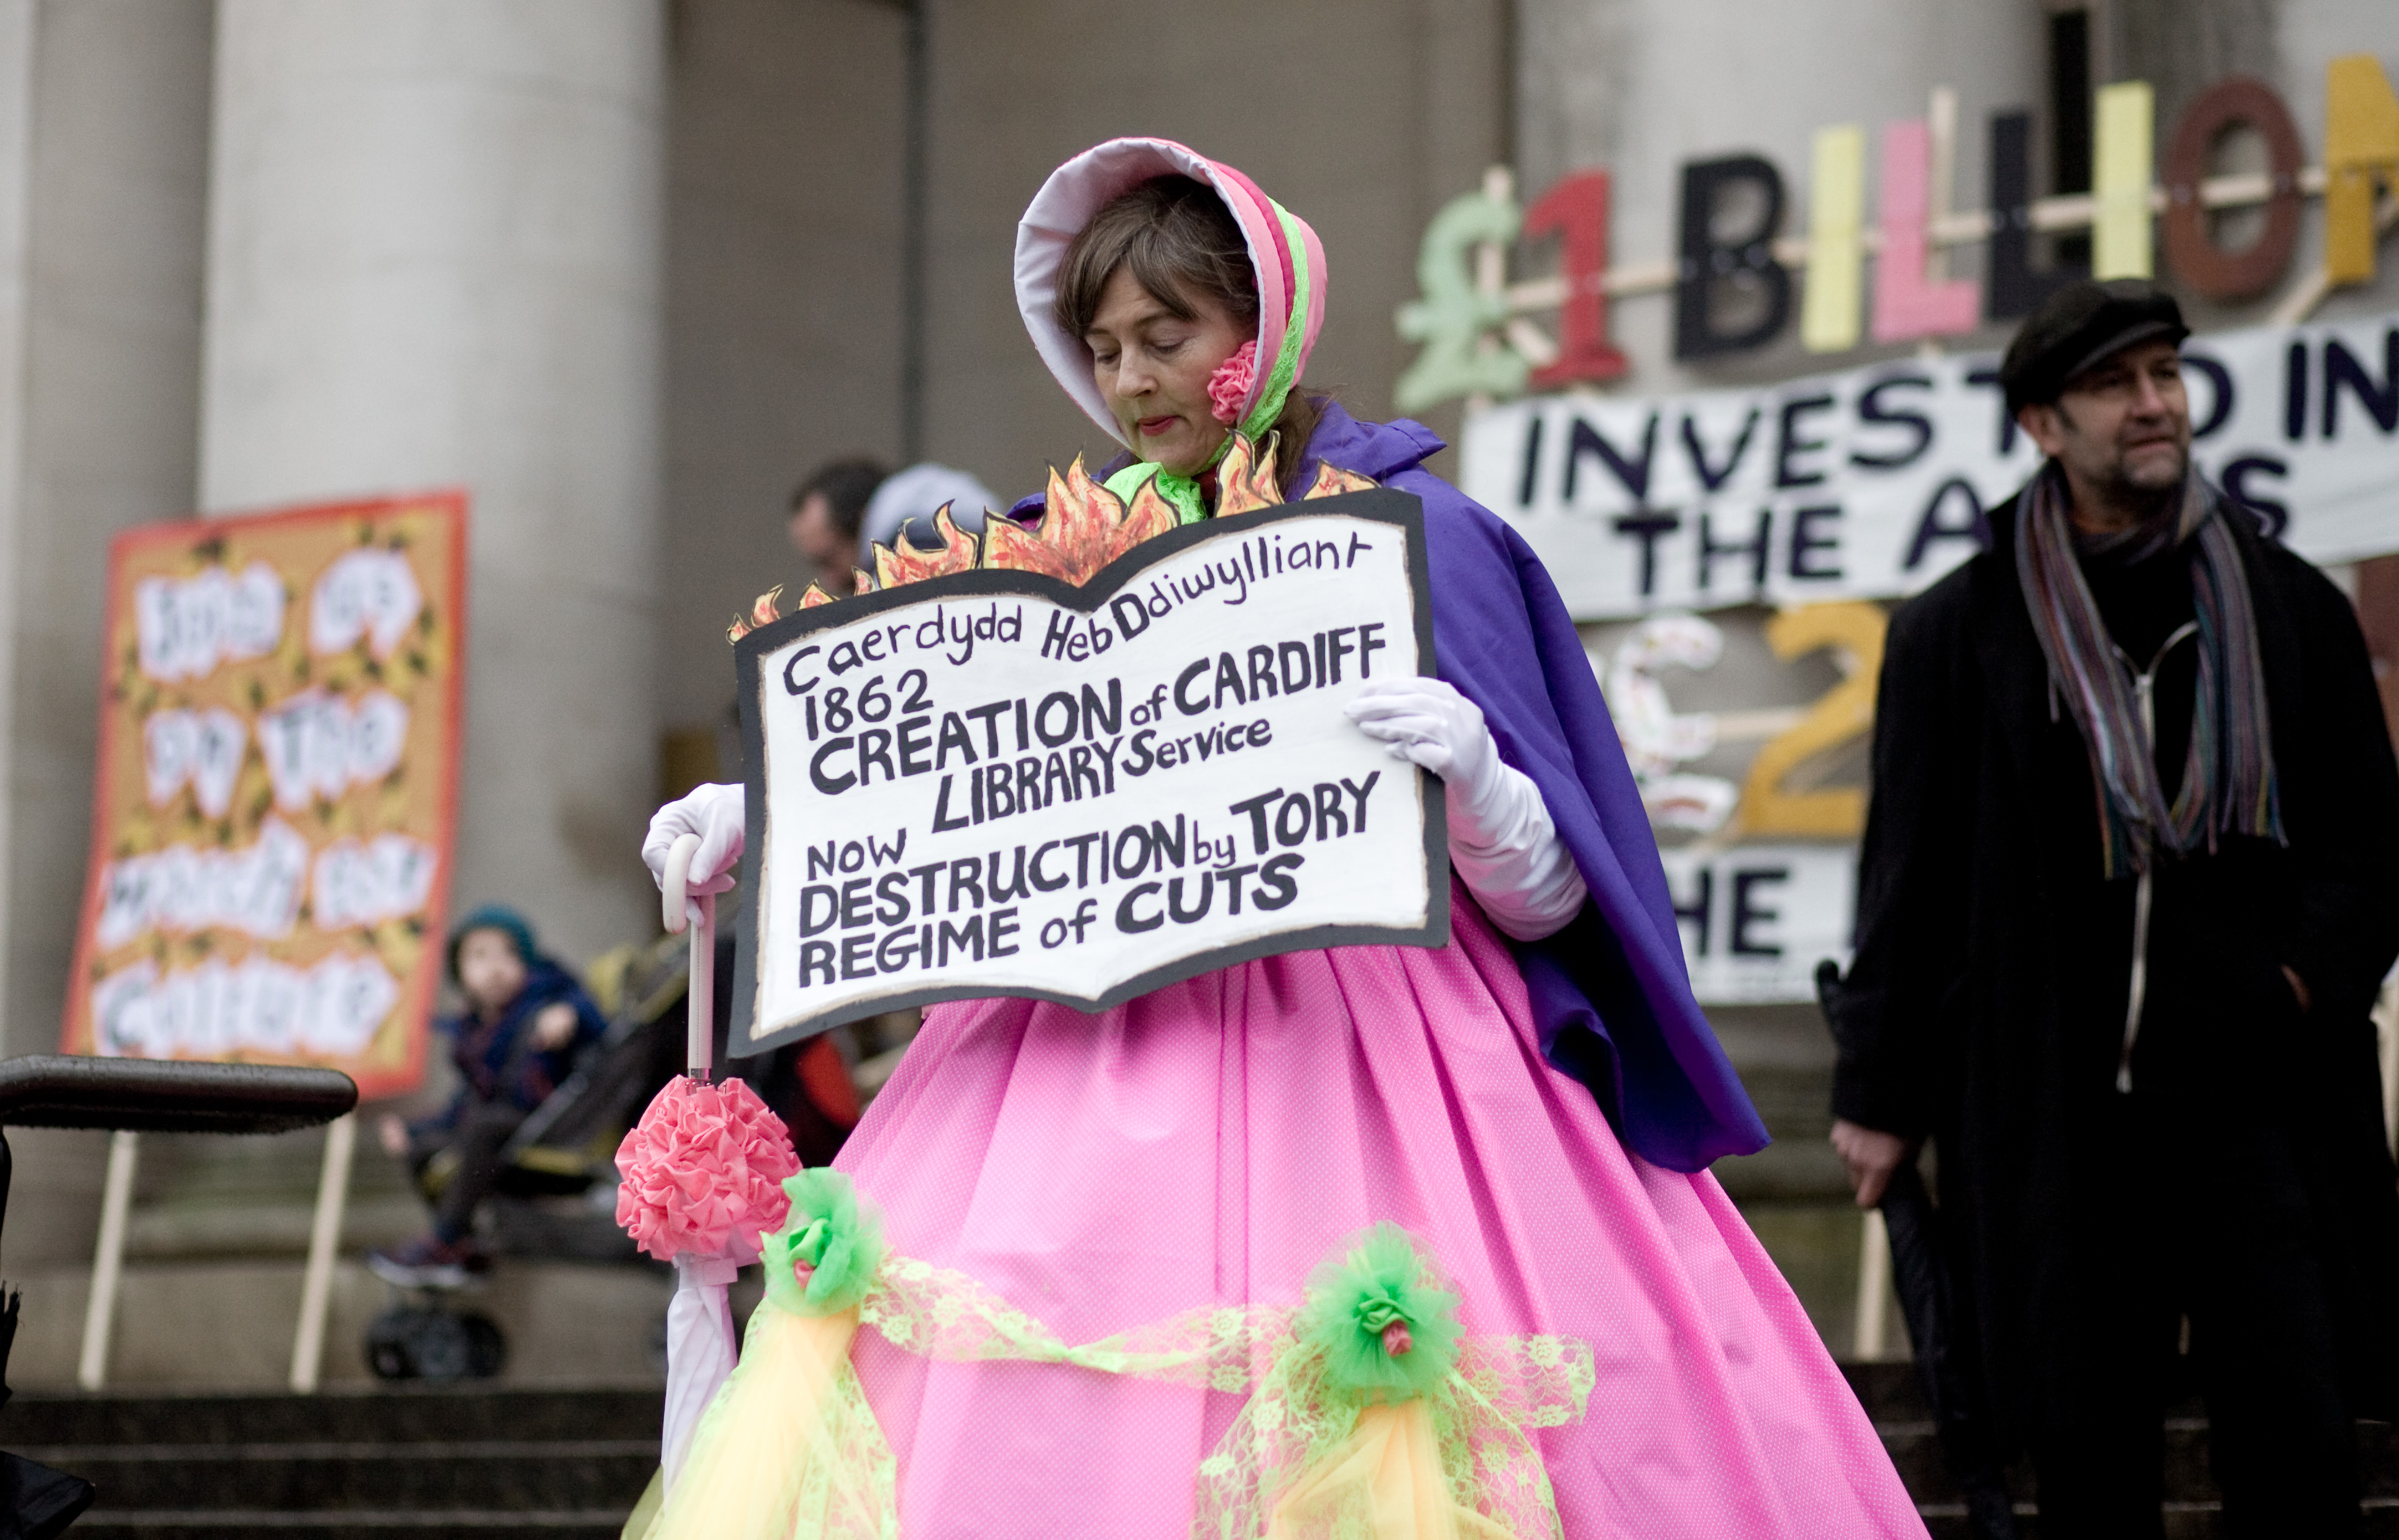 Cardiff Without Culture March 6th Feb 2015-1